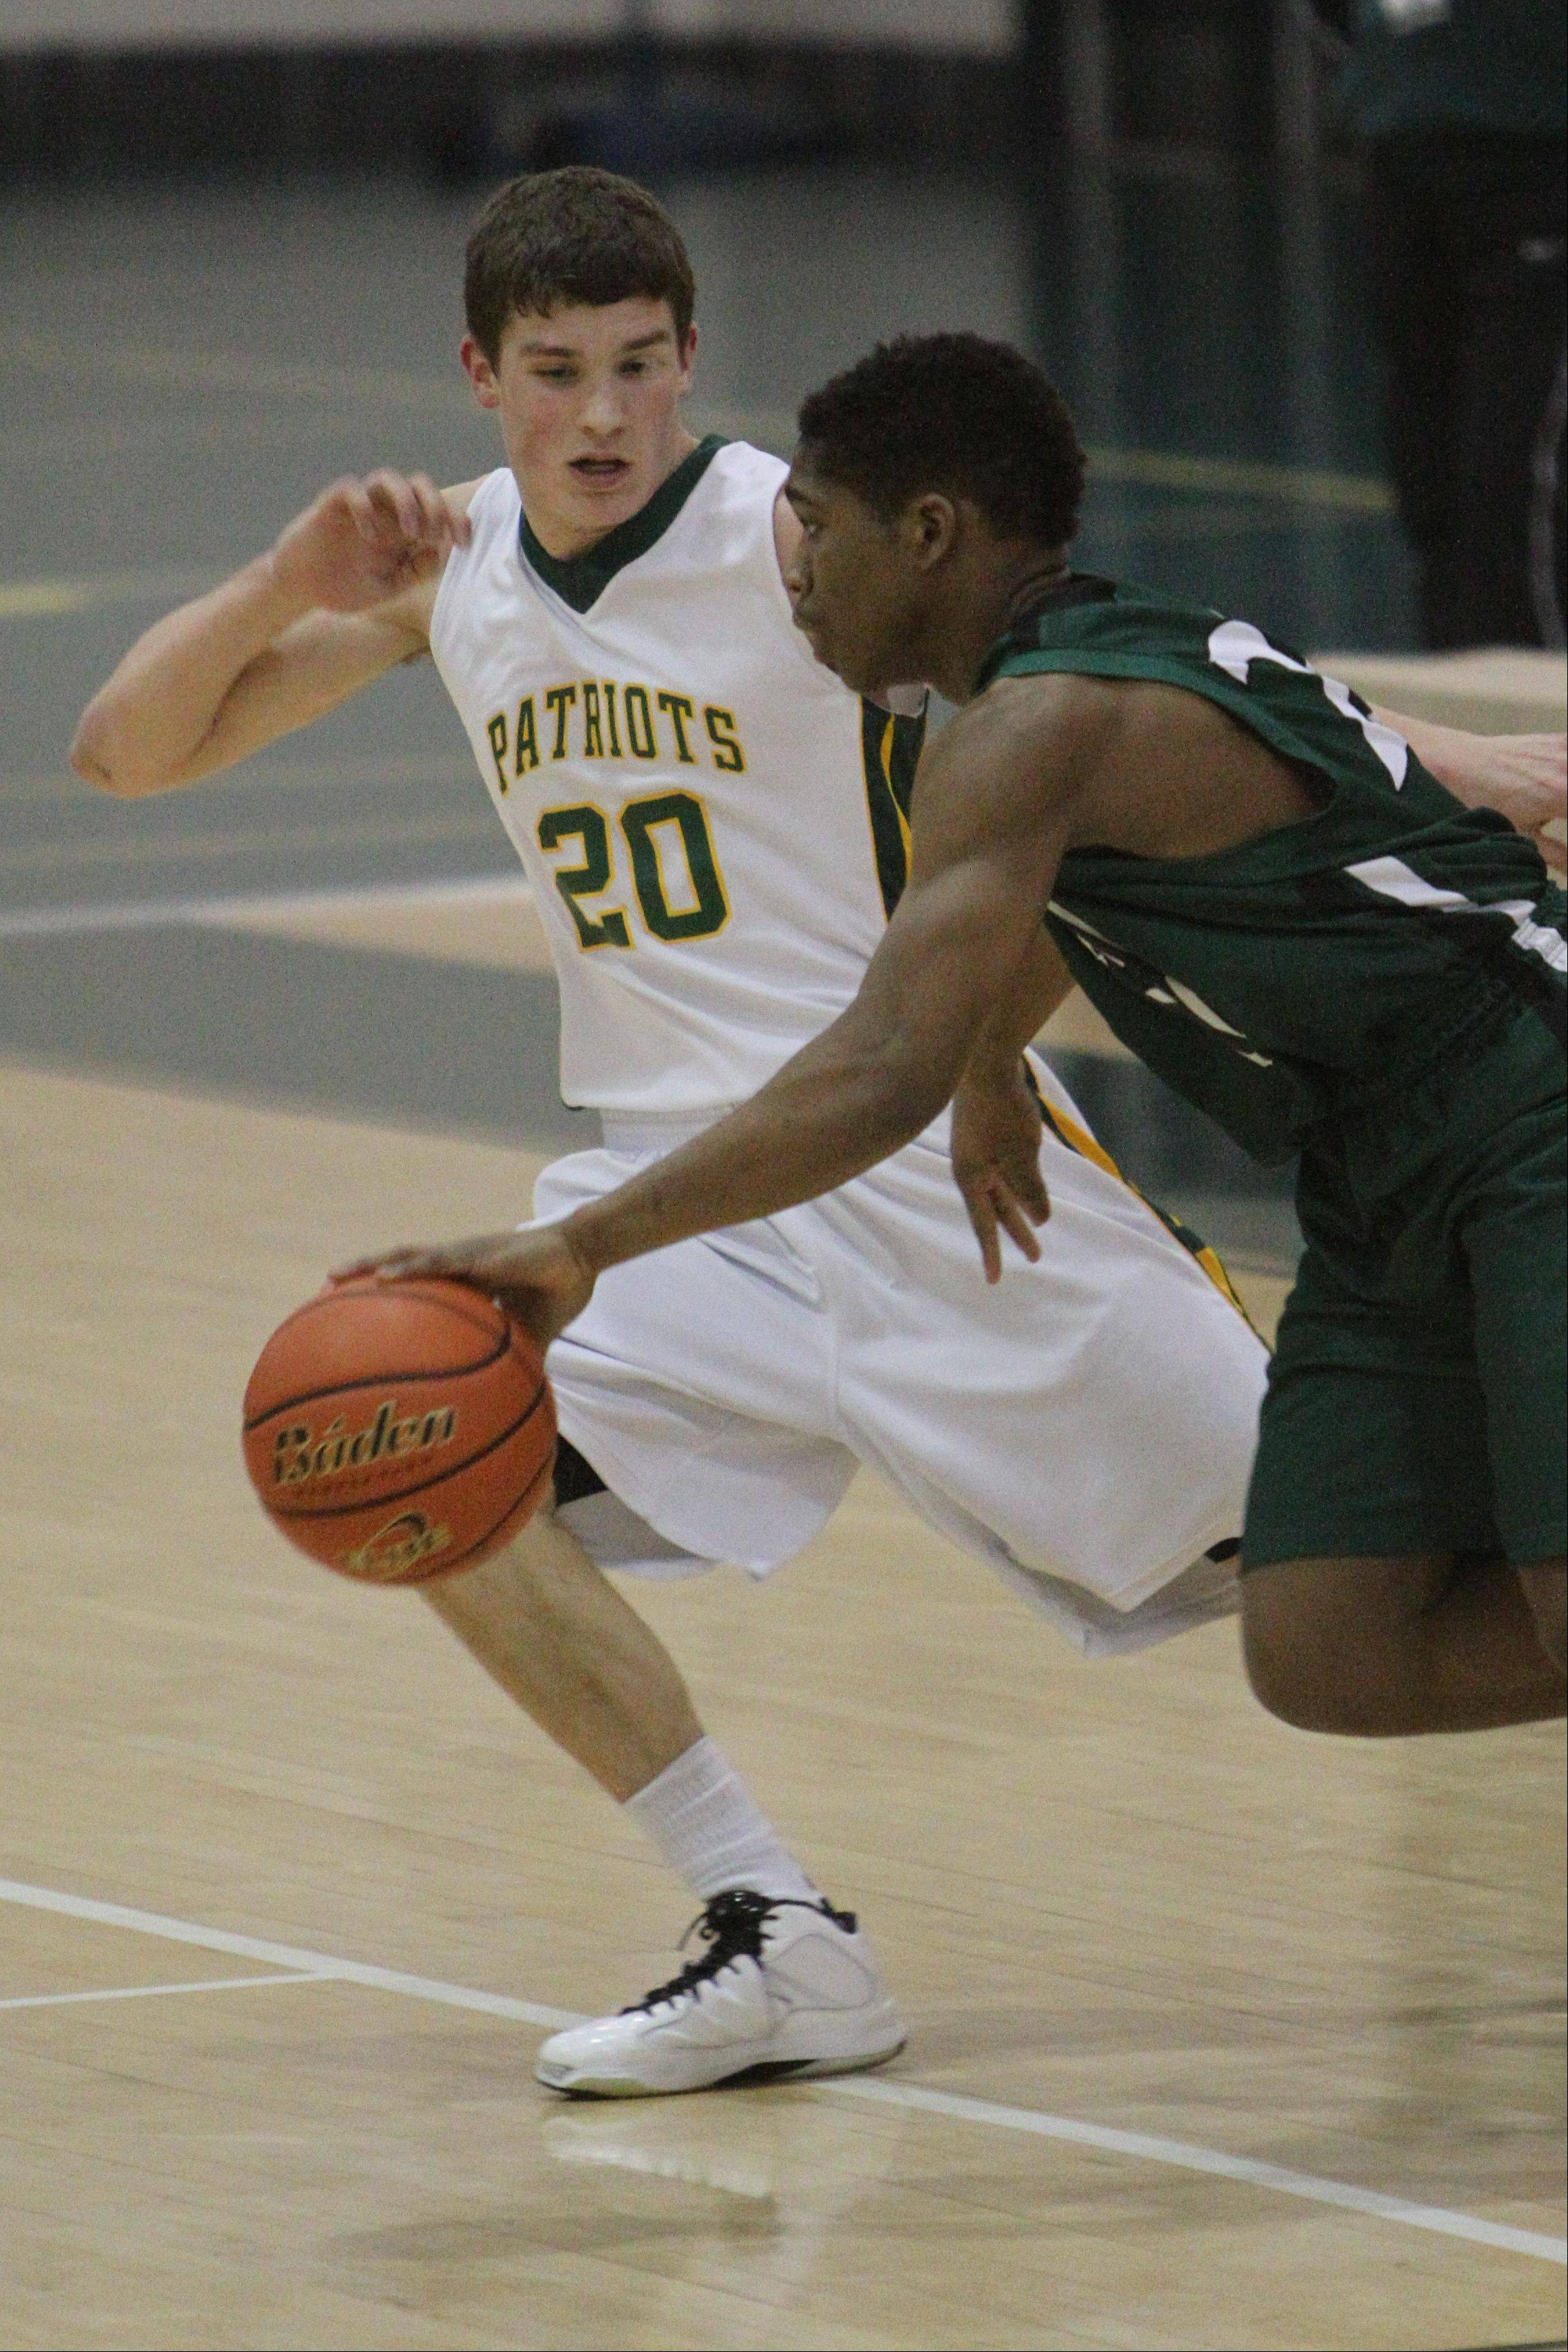 Images from the Glenbard West at Stevenson boys basketball game on Tuesday, Jan. 29 in Lincolnshire.